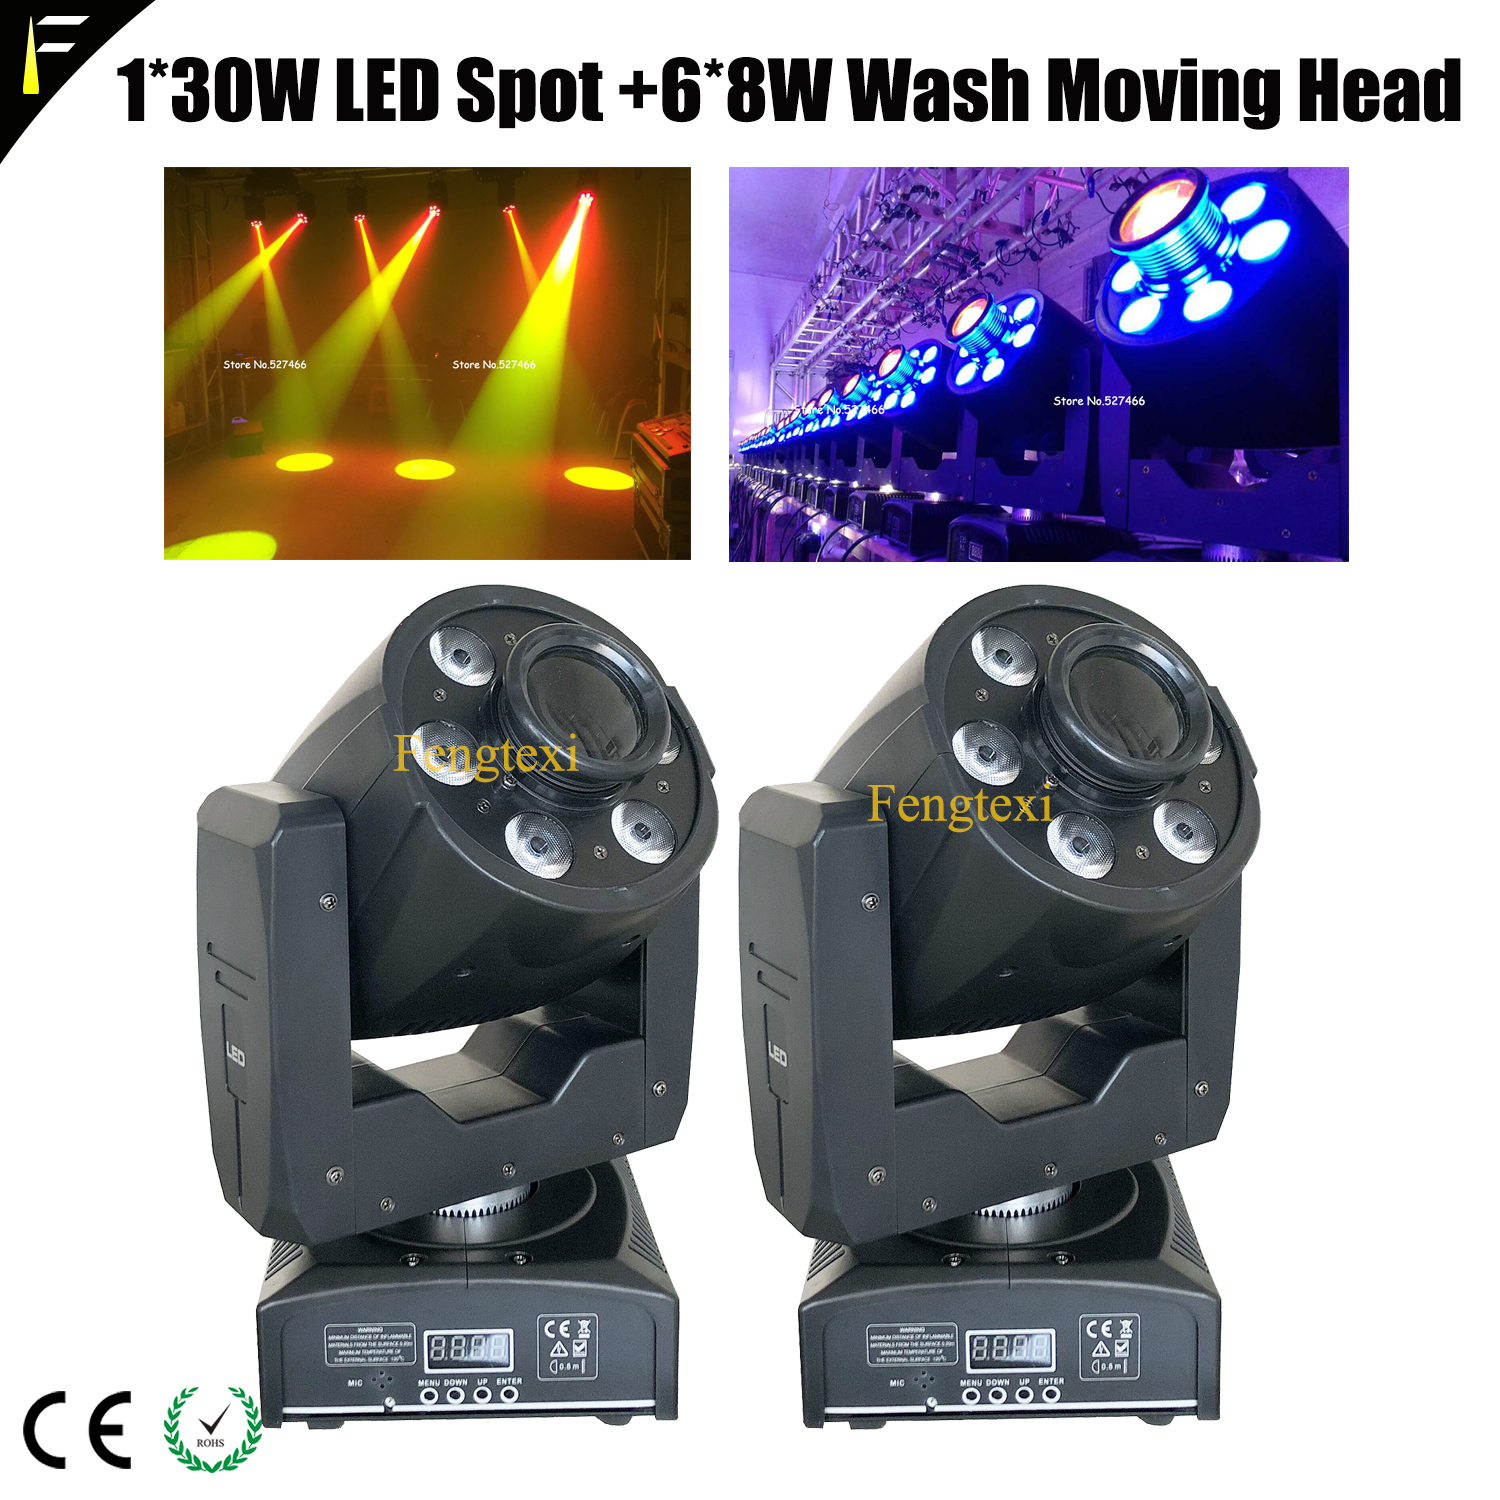 2*Portable Club Bar Stage LED Moving Head Multi Effect Spot Wash Beam Strobe Light Equipment With DMX512+Power Cable And Bracket